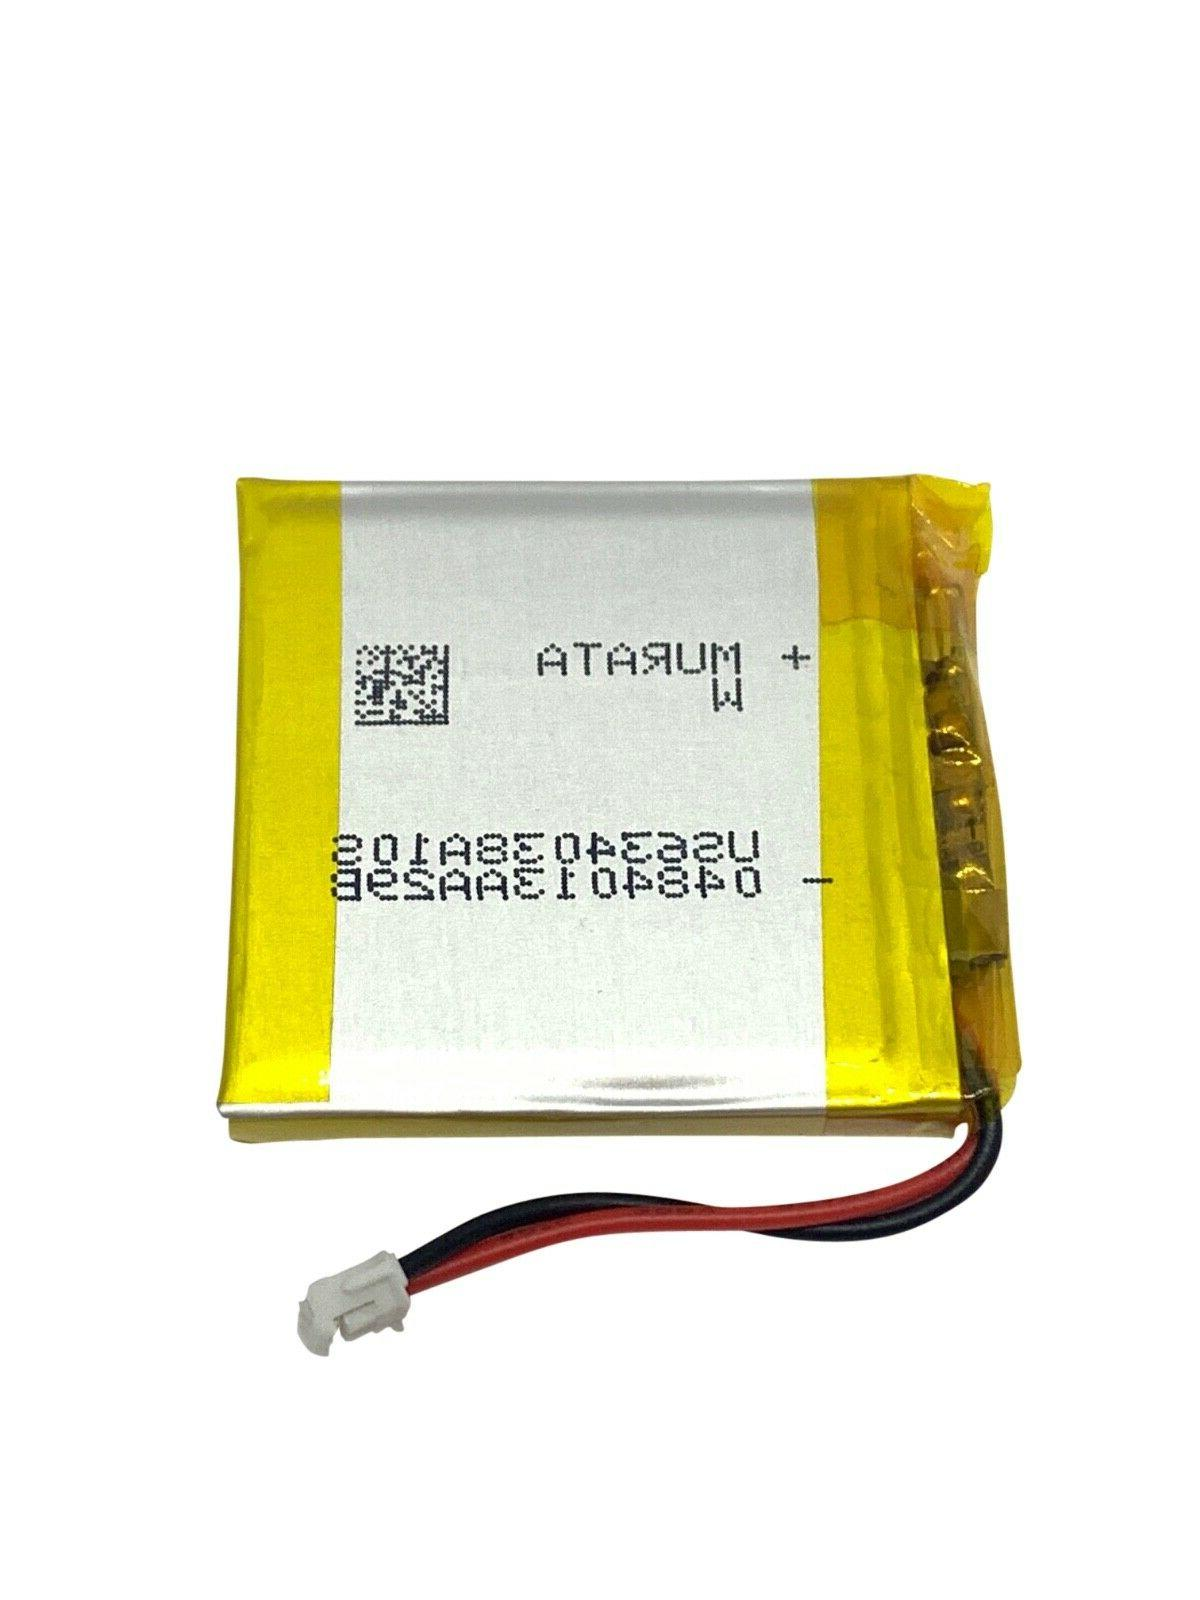 Sony Wireless Replacement 3.7V